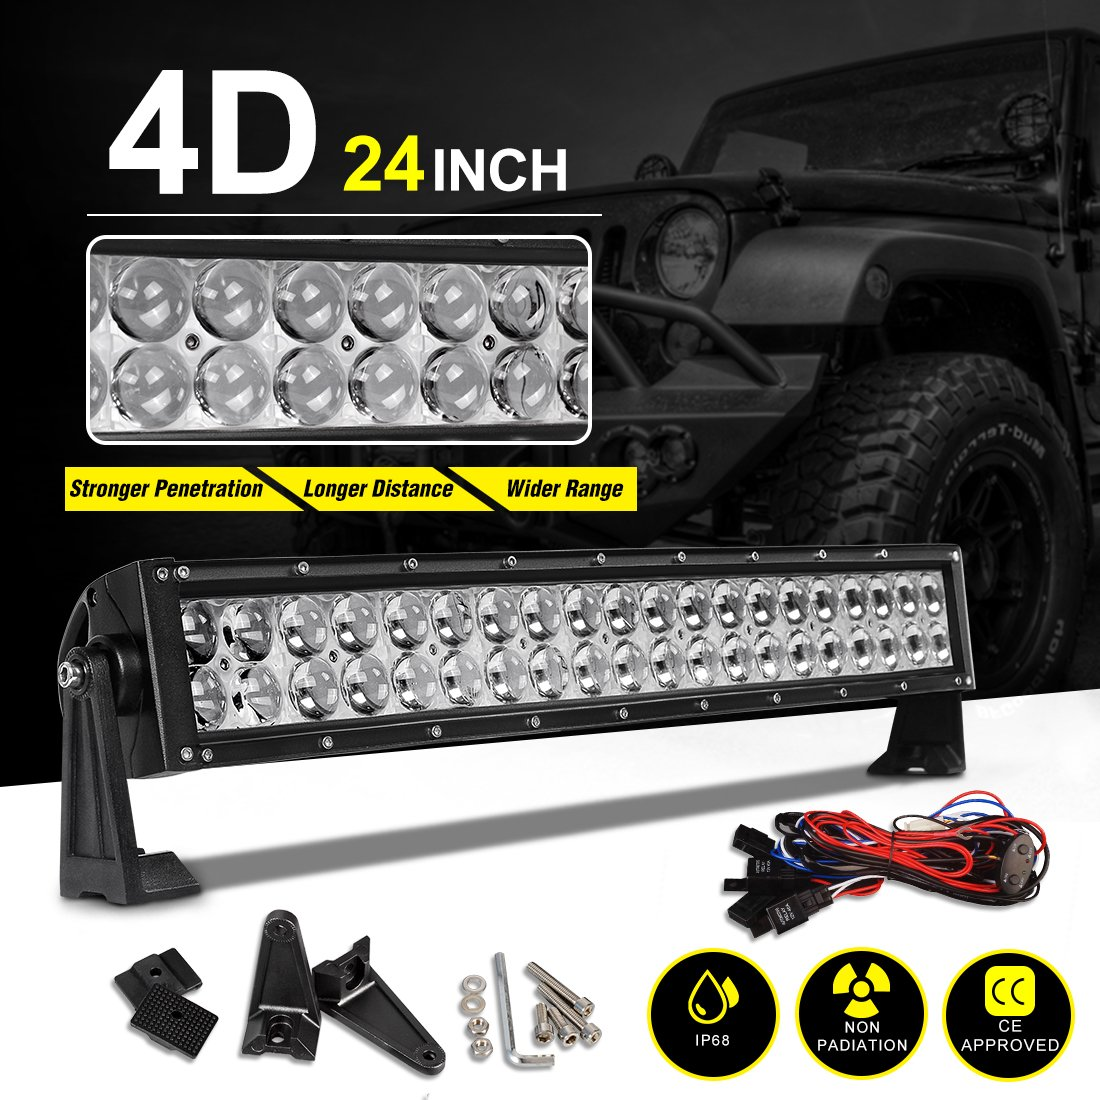 2 Years Warranty LED Light Bar 52Inch 4D 500W Curved Working Lights 45000Lumens Lamp Marine Boating Light IP68 WATERPROOF Spot /& Flood Combo Beam Light Bar